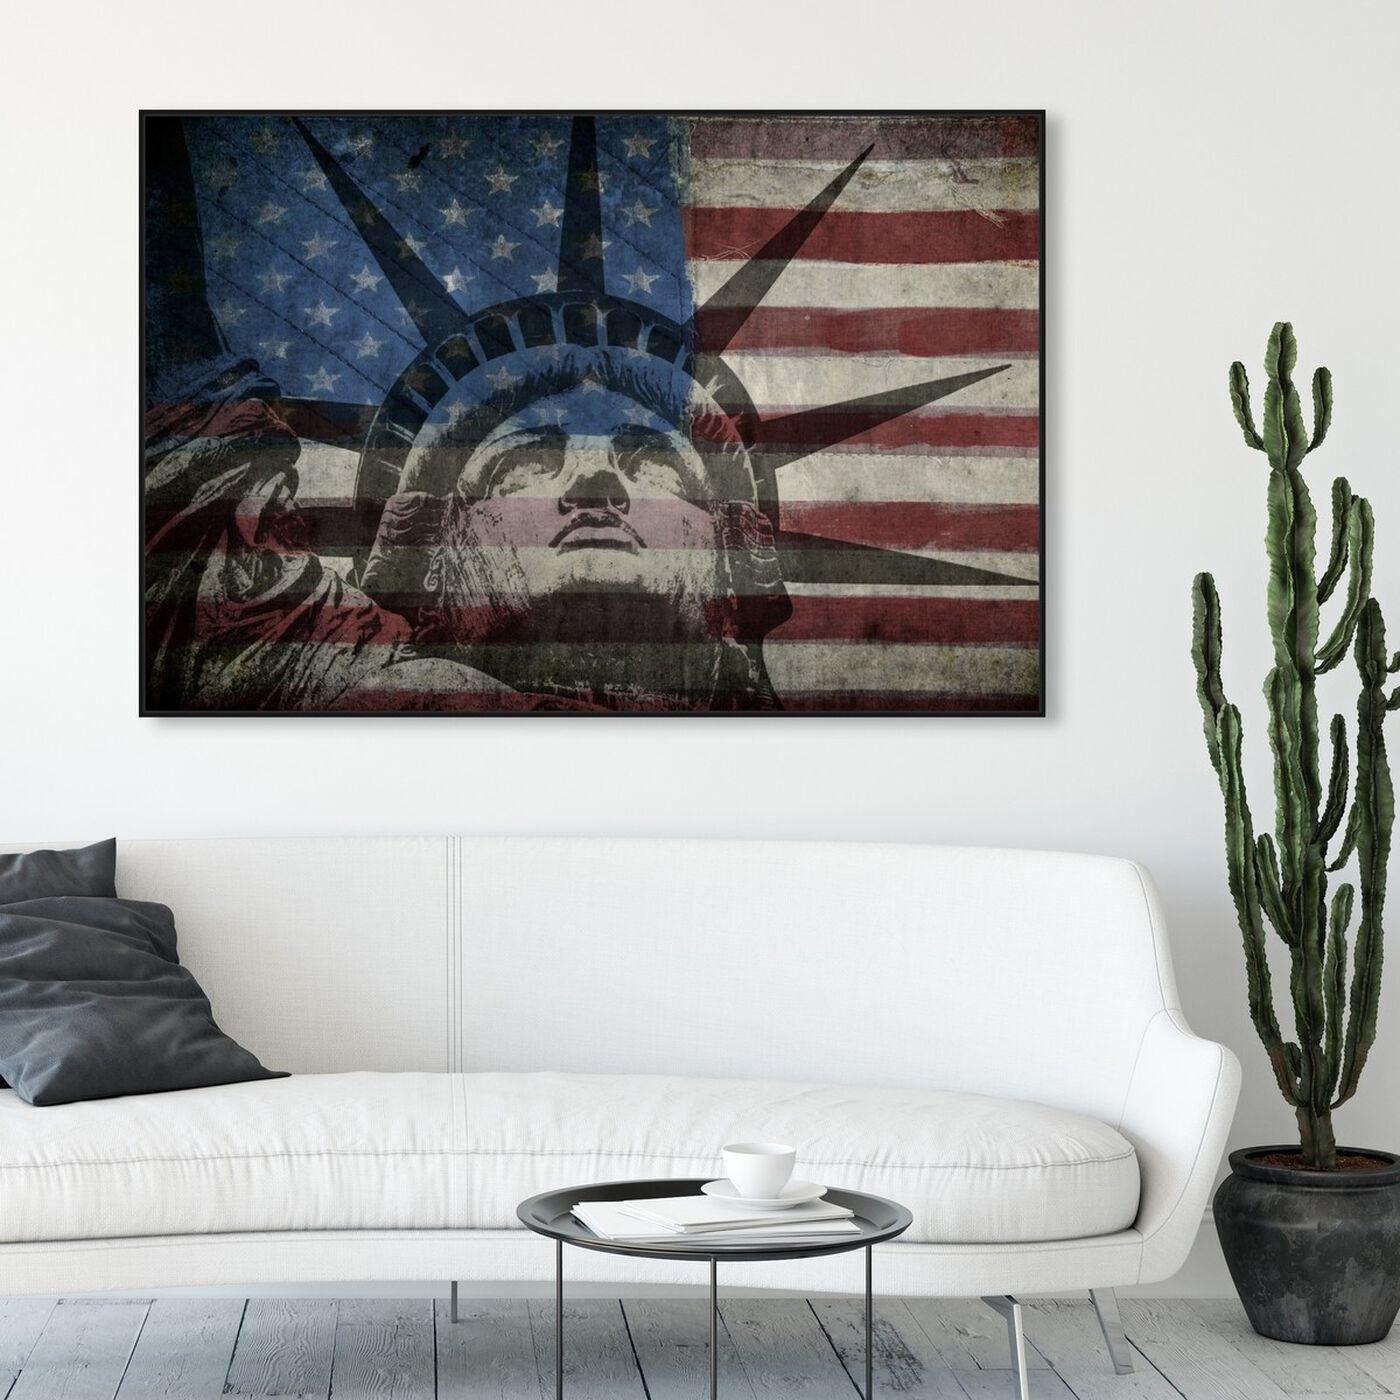 Hanging view of Statue of Liberty featuring americana and patriotic and us flags art.